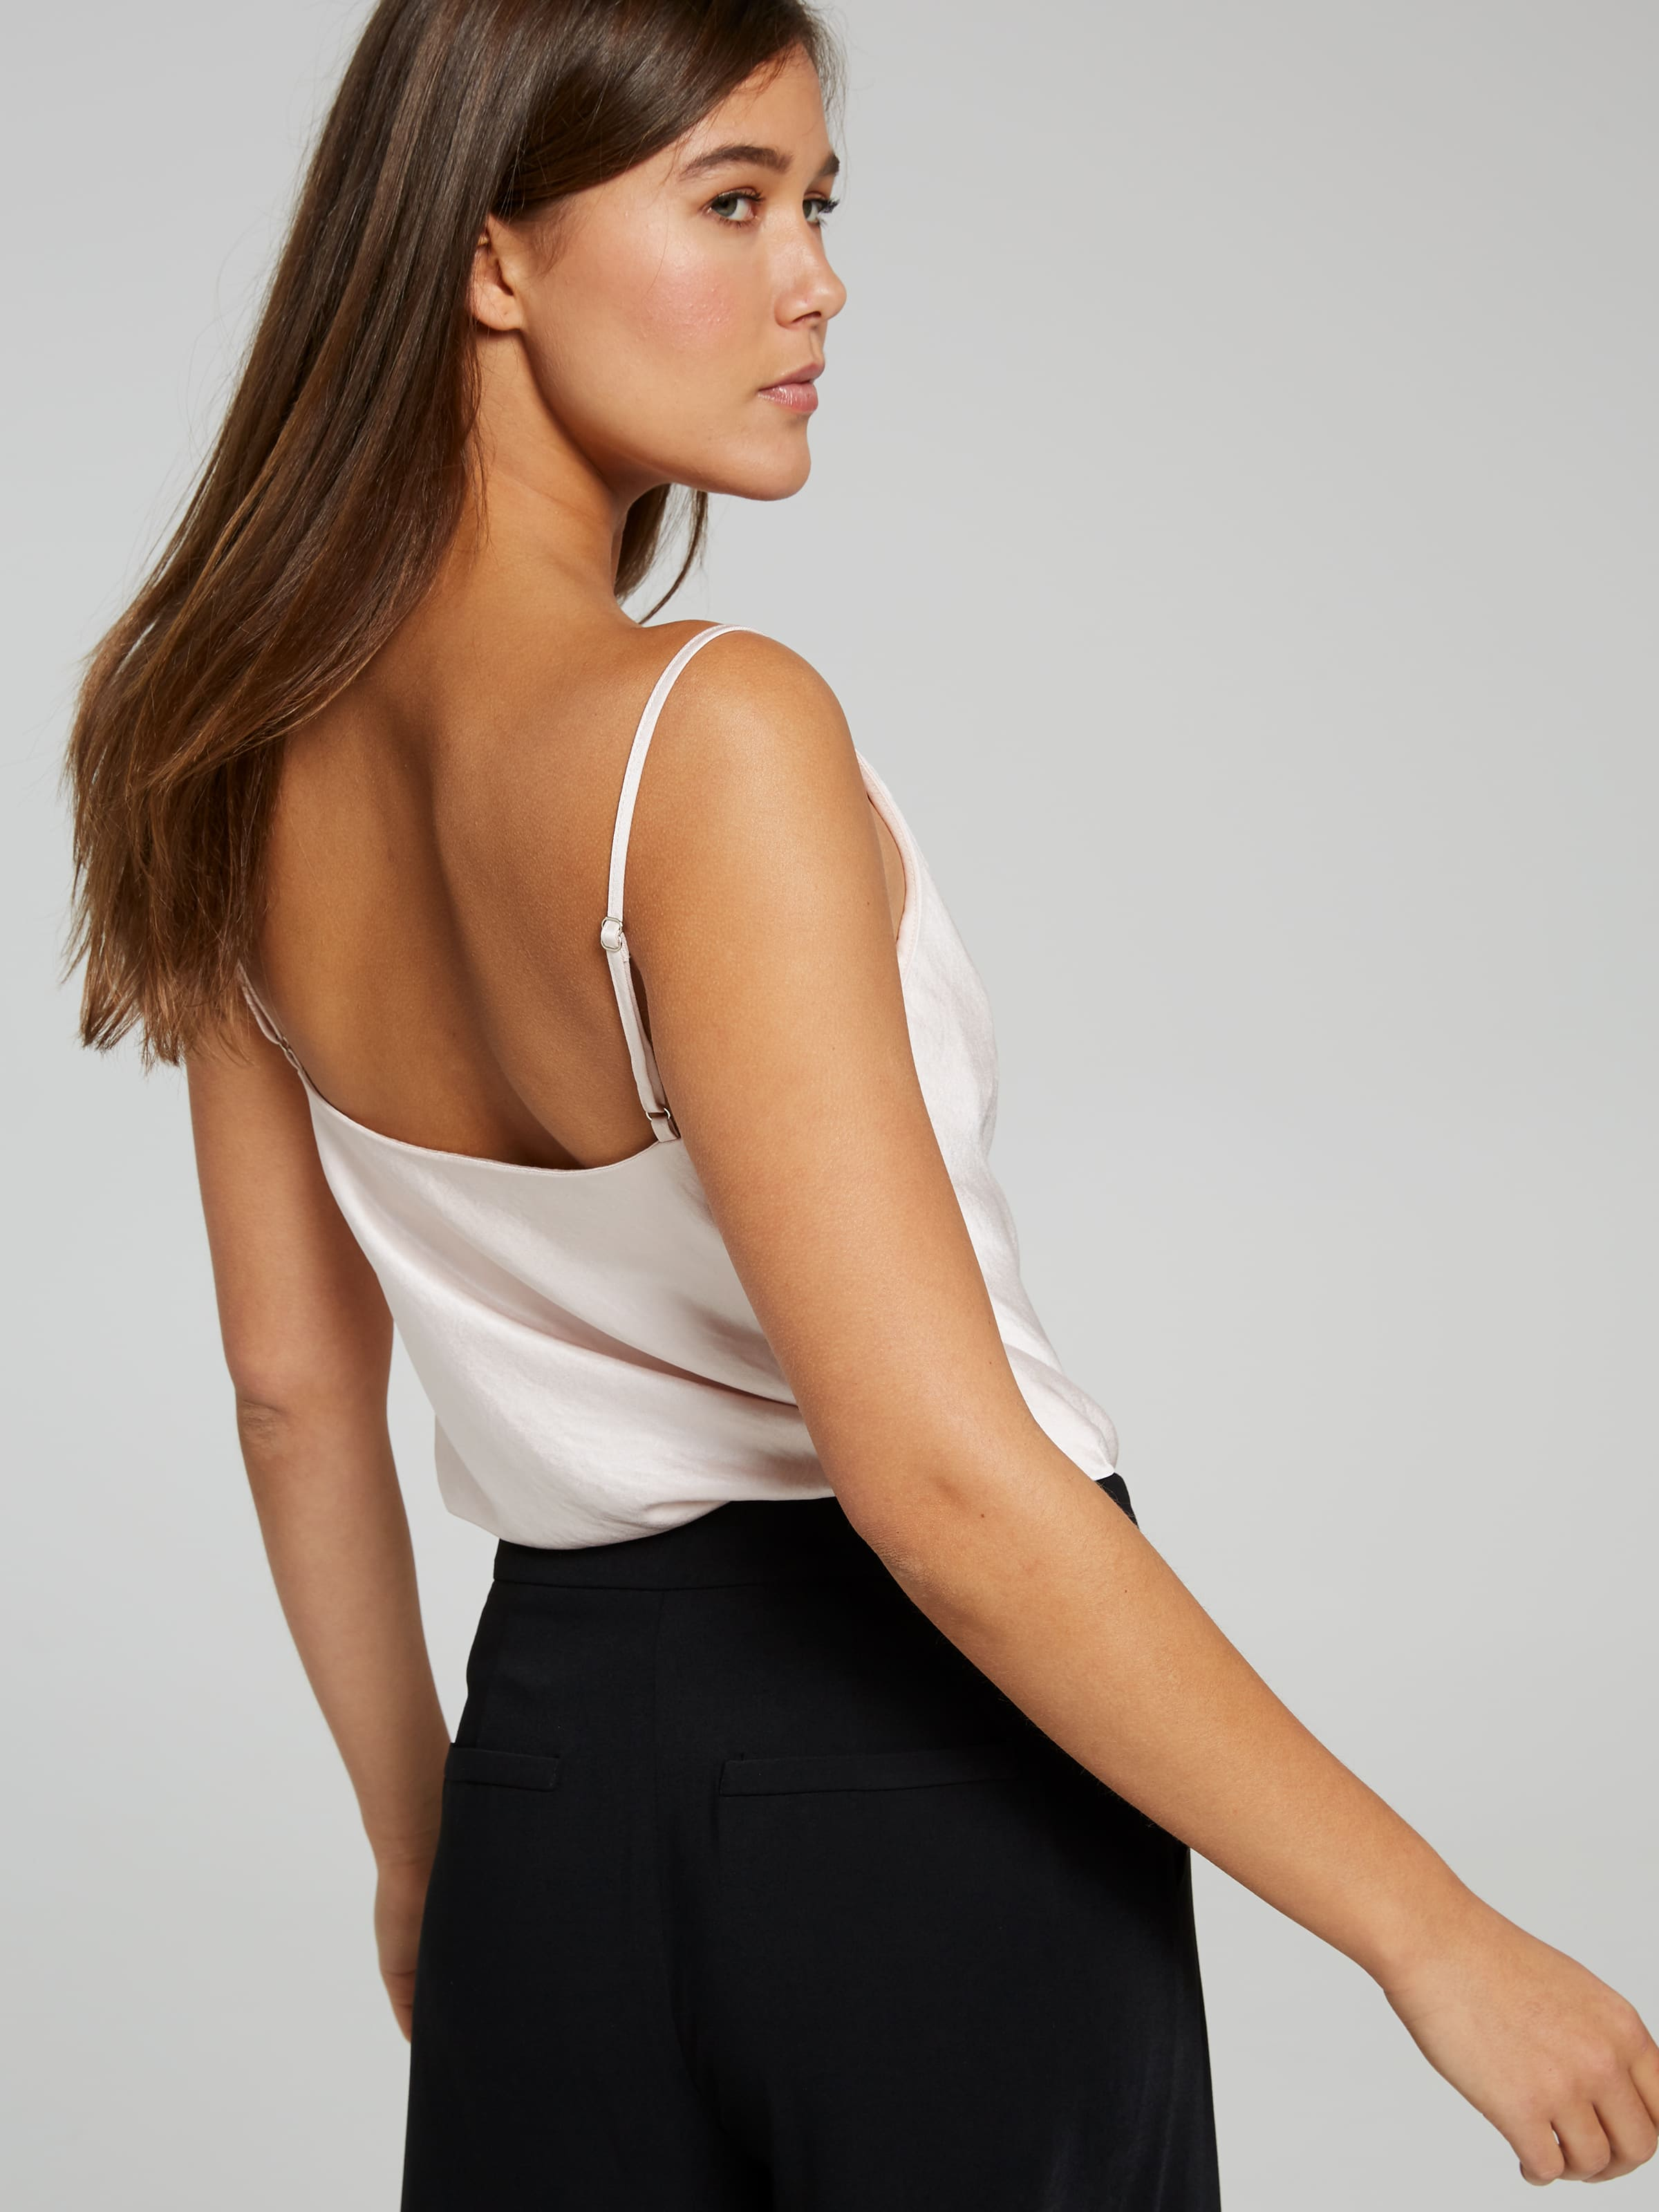 48af3f824c6116 ... Image for L.A Nights Cowl Neck Cami from Dotti Online ...